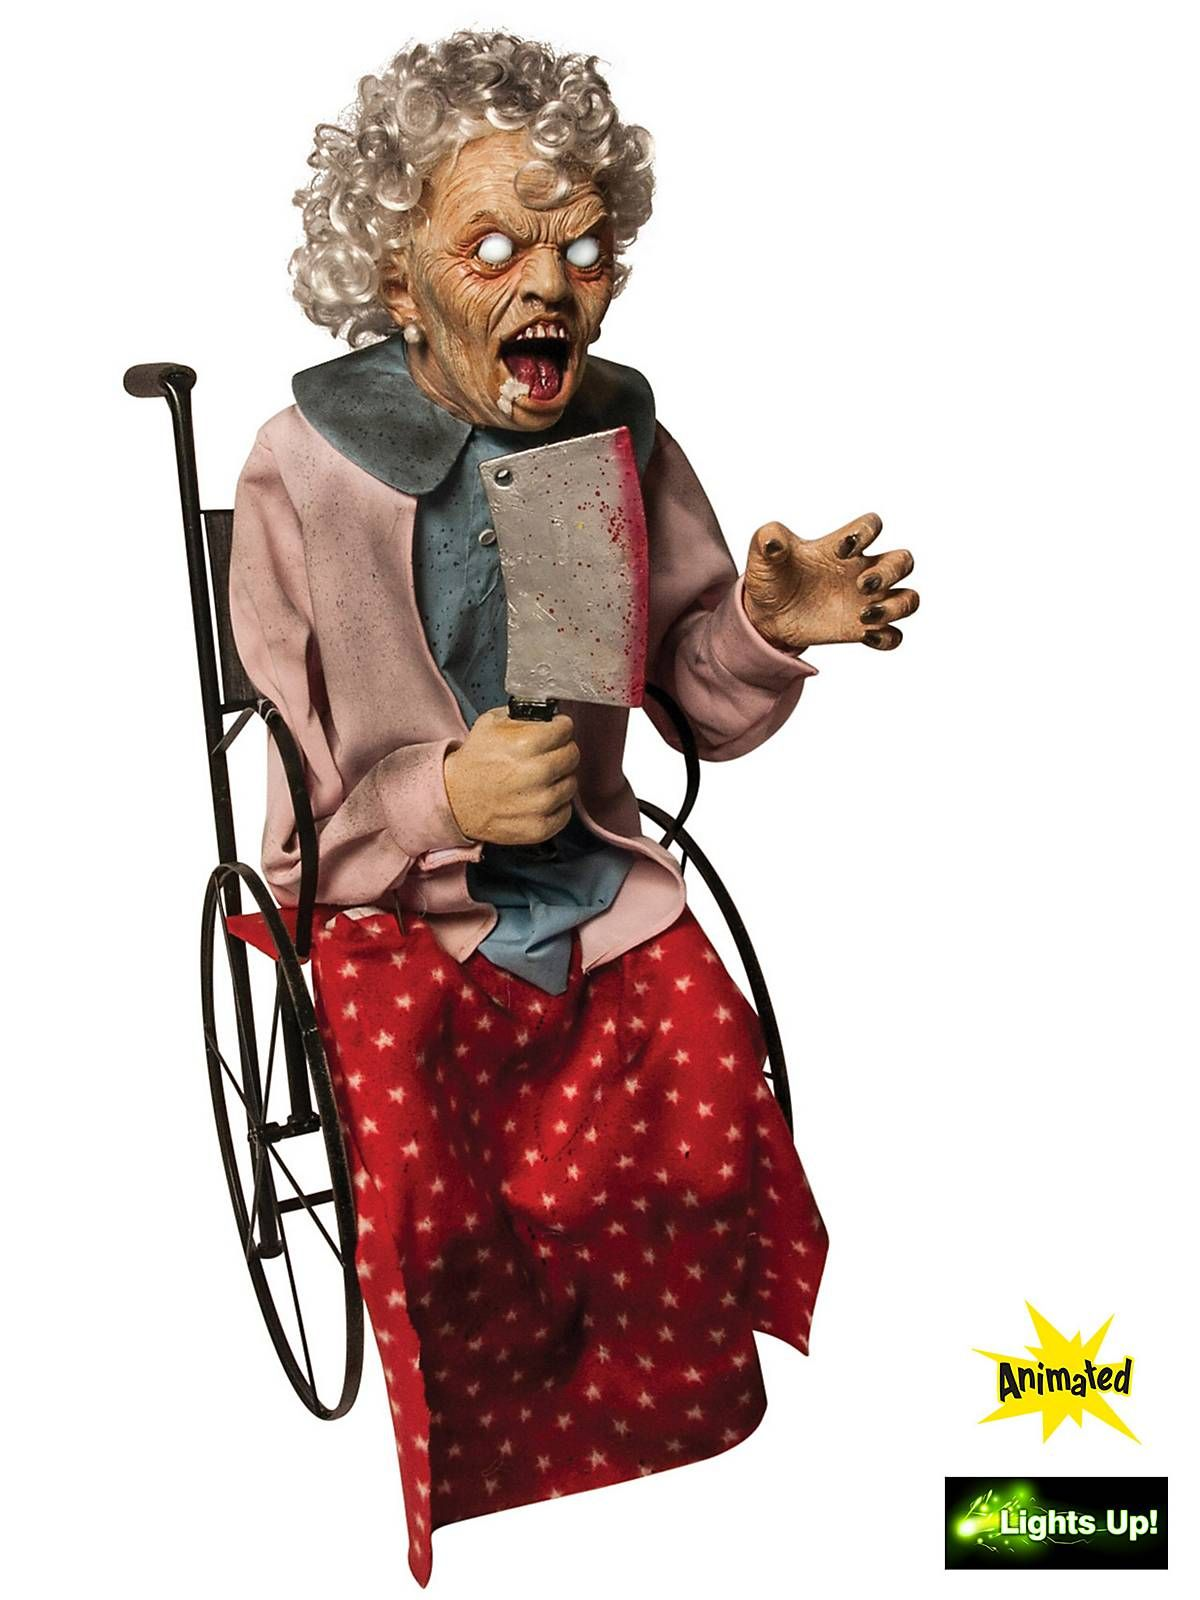 animated wheelchair granny prop animated props at frightcatalogcom - Fright Catalog Halloween Decorations